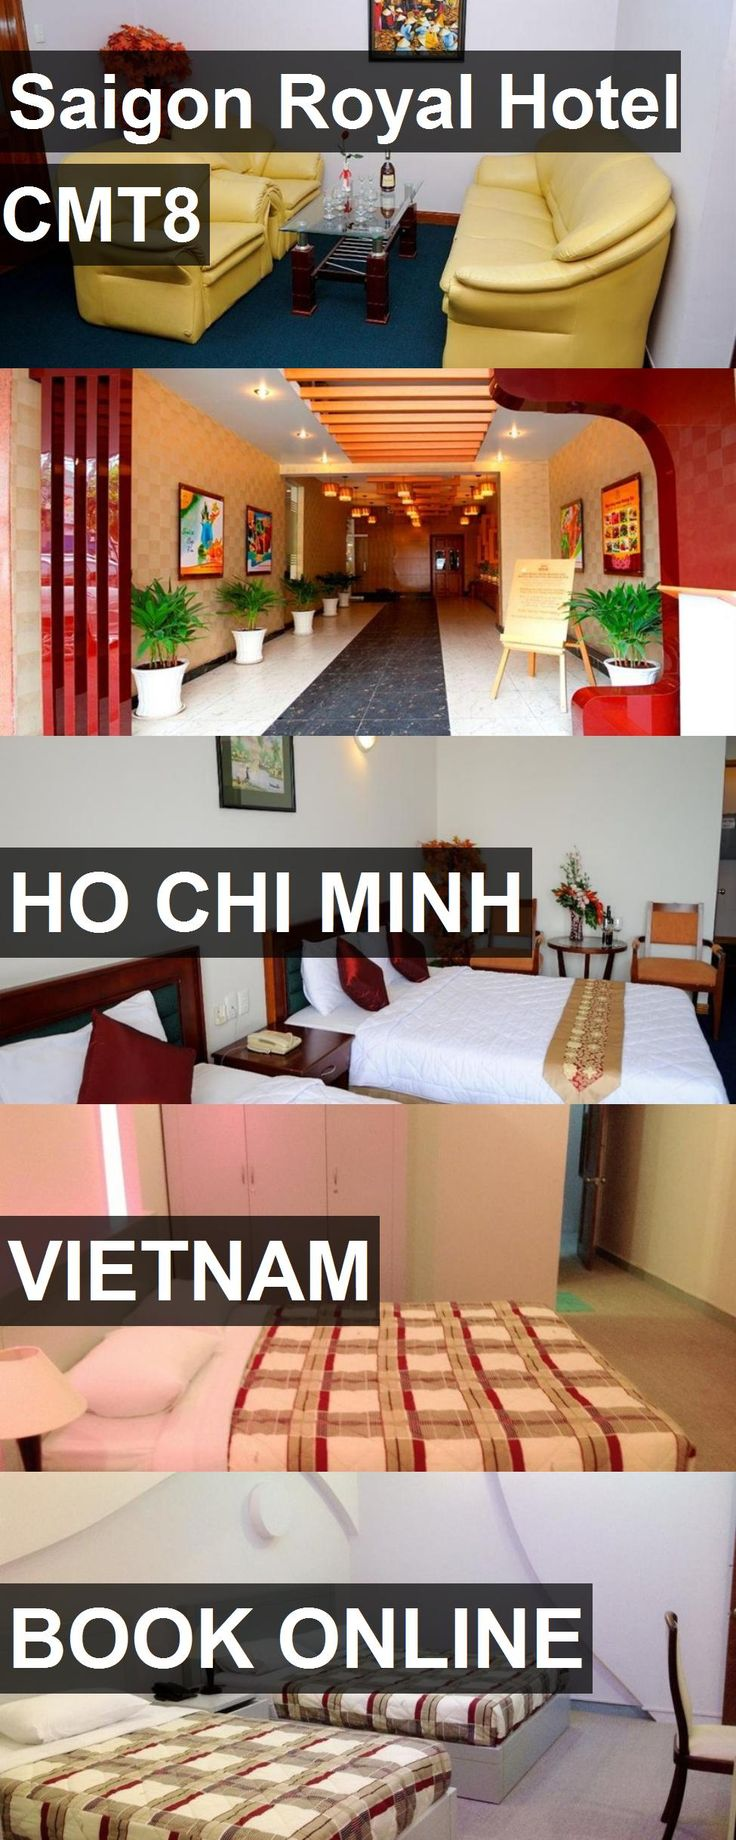 Hotel Saigon Royal Hotel CMT8 in Ho Chi Minh, Vietnam. For more information, photos, reviews and best prices please follow the link. #Vietnam #HoChiMinh #SaigonRoyalHotelCMT8 #hotel #travel #vacation